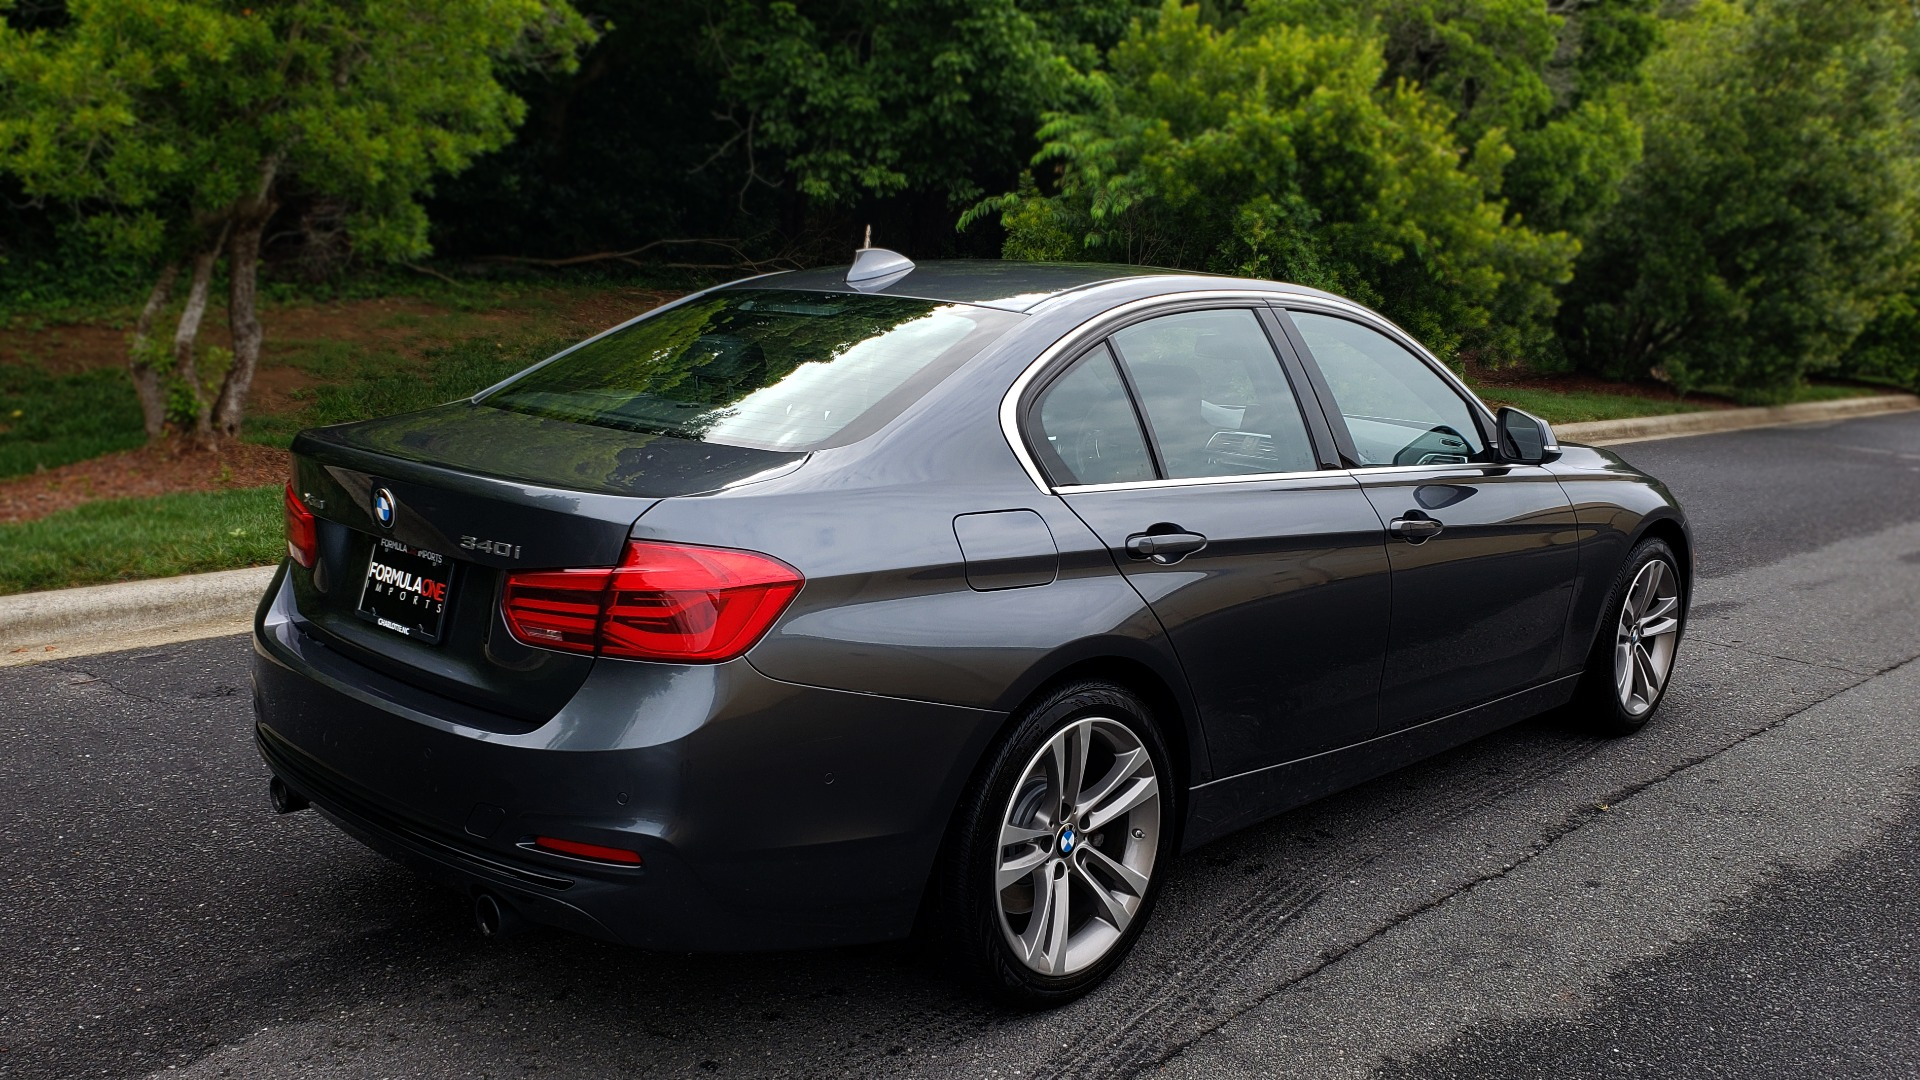 Used 2017 BMW 3 SERIES 340I XDRIVE SPORT / NAV / DRVR ASST PLUS / PARK ASST / CLD WTHR for sale $28,995 at Formula Imports in Charlotte NC 28227 6